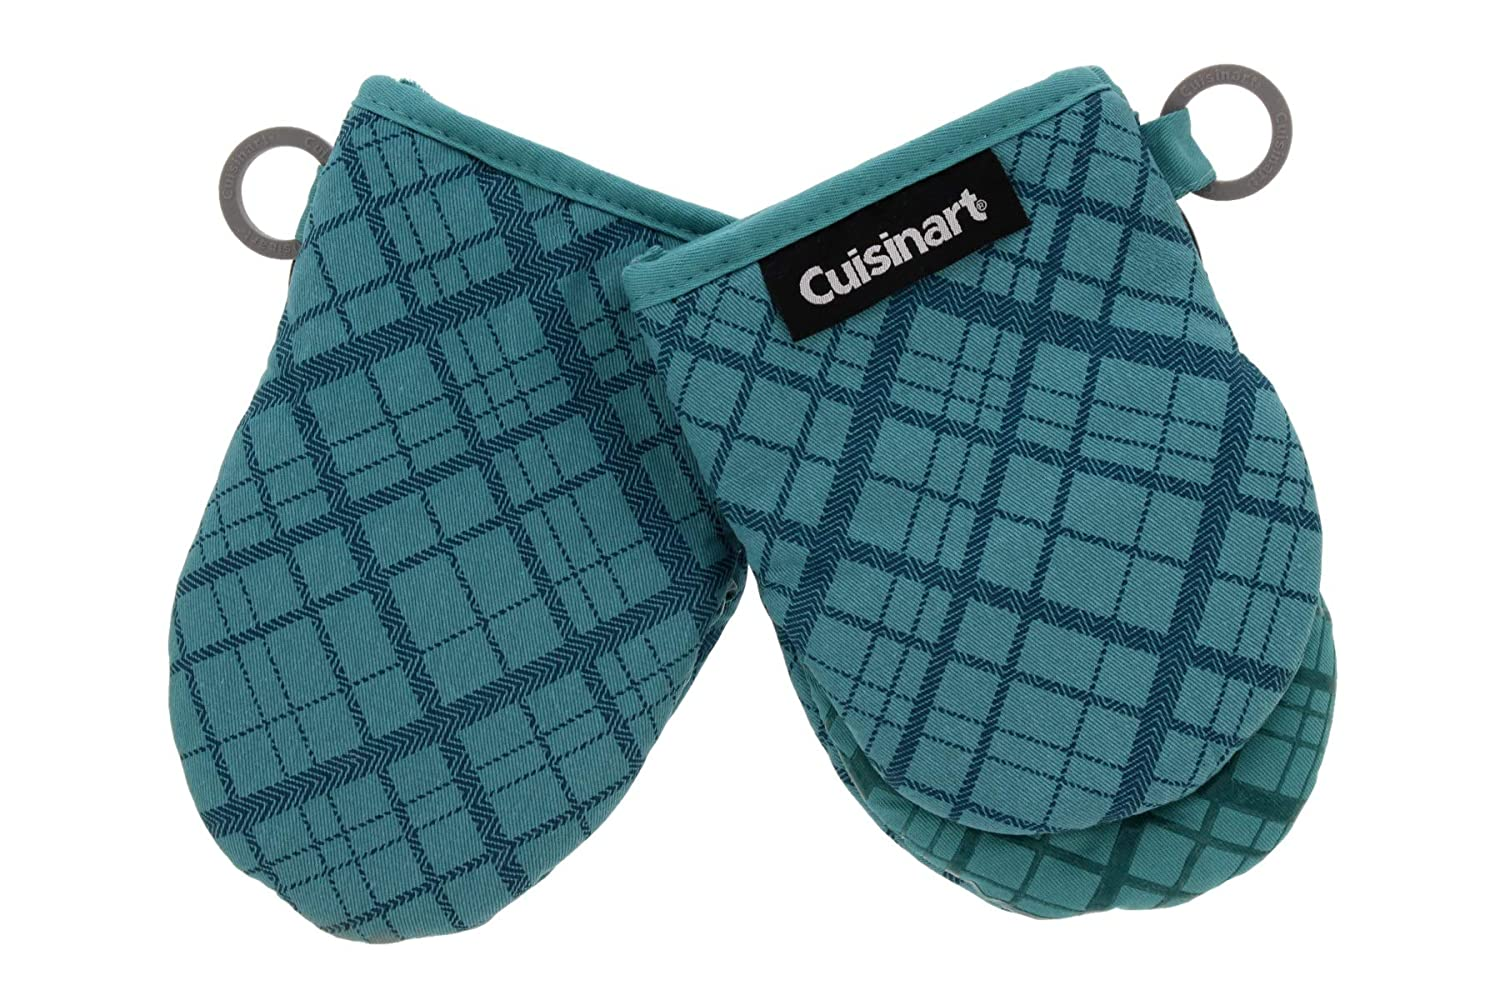 "Cuisinart Silicone Mini Oven Mitts, 2 Pack-Little Oven Gloves for Cooking-Heat Resistant, Non-Slip, Hanging Loop, 5.5"" x 7.5""-Ideal for Handling Hot Kitchen/Bakeware Items- Crosshatch Bristol Blue"